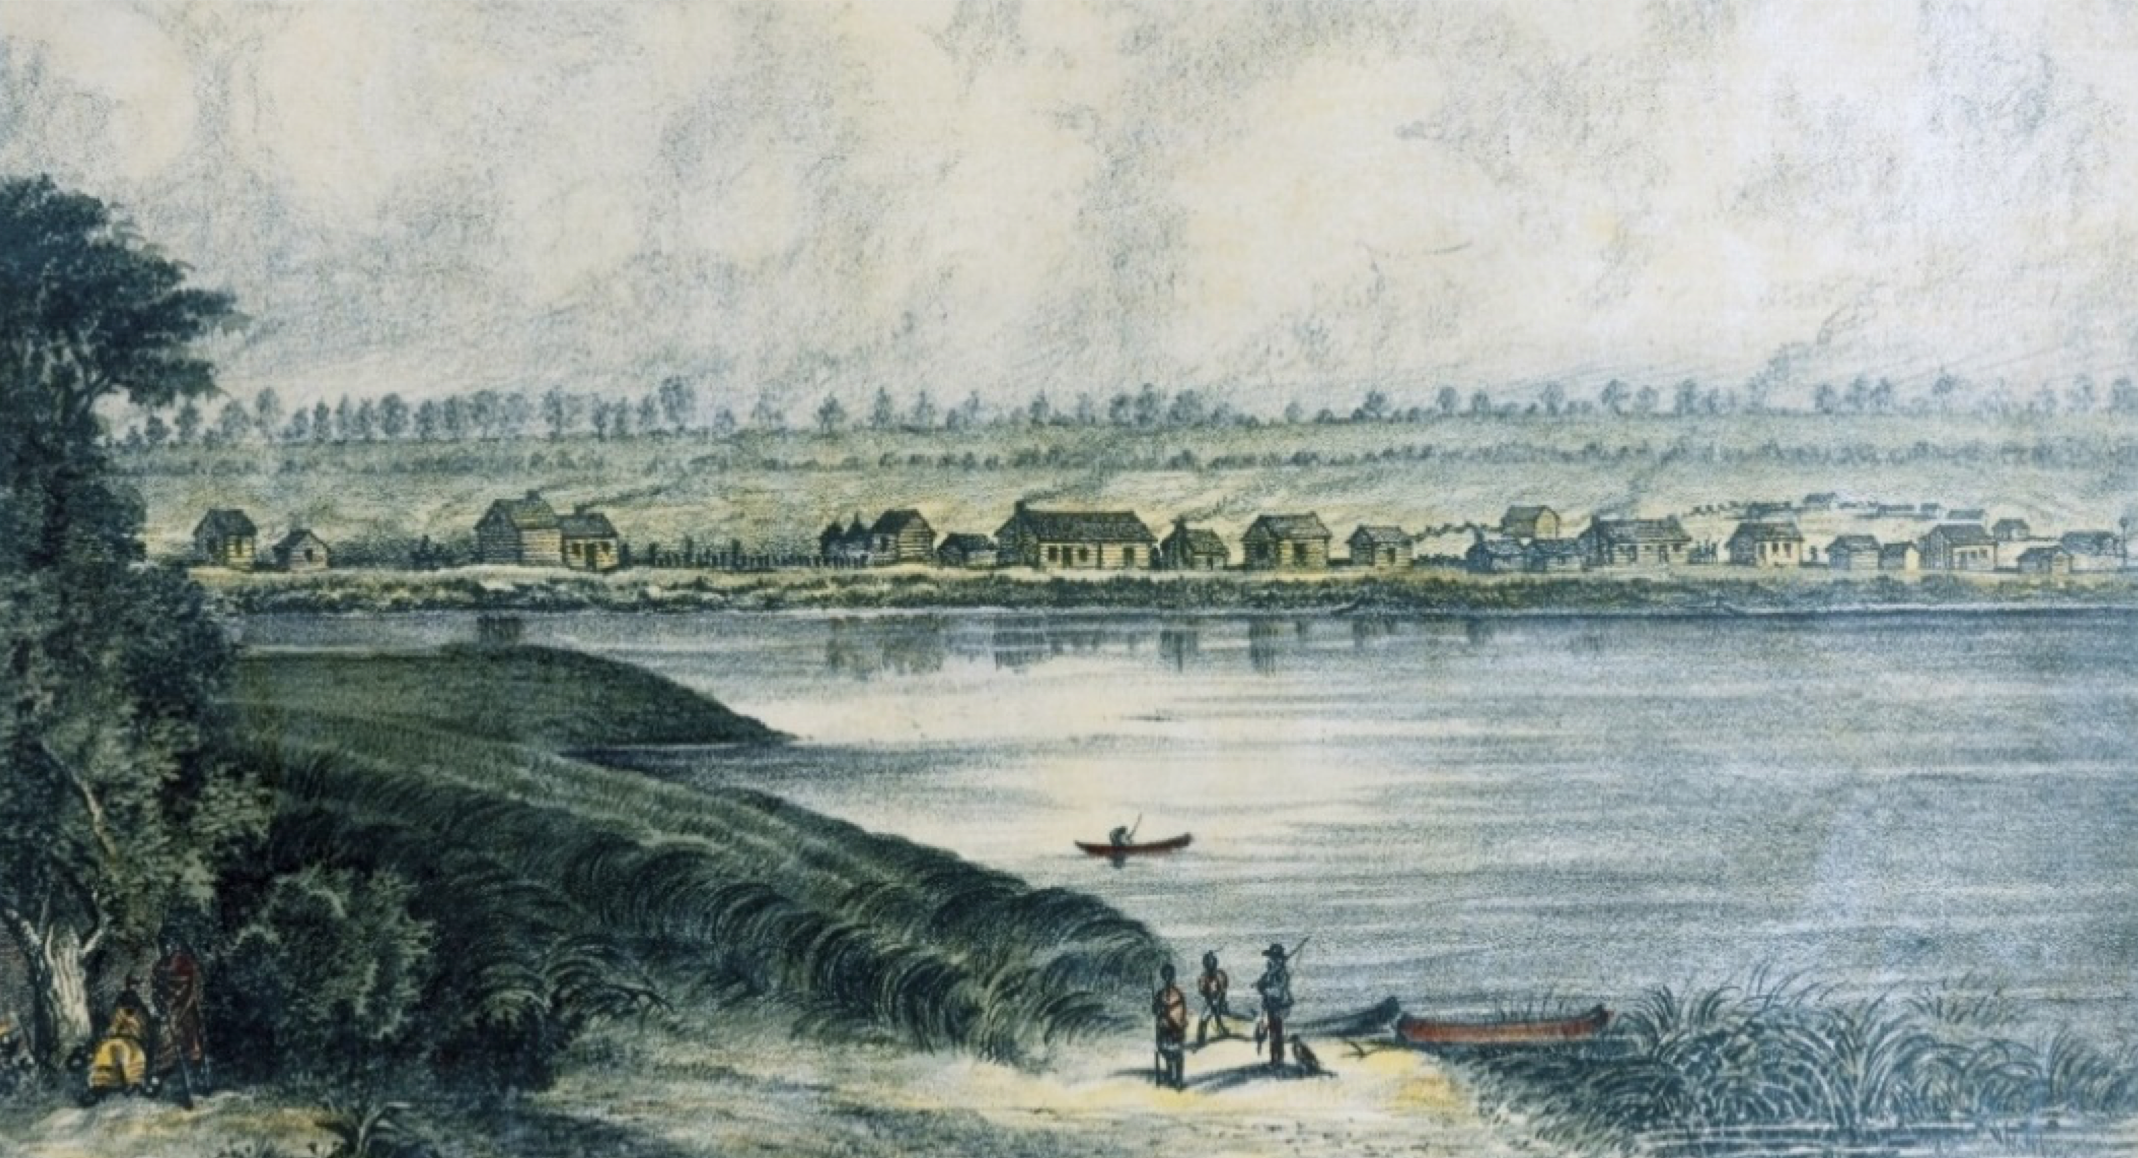 Peoria was settled as a French fur trading outpost in 1691 under the direction of the French explorer Henri de Tonti. The first Americans settled here in 1819. The village was first officially incorporated as a town on July 18, 1835. At that time, the settlement looked much like this view which was originally drawn in August 1831 by John M. Roberts. This colored reproduction was created later by Charles Overall.